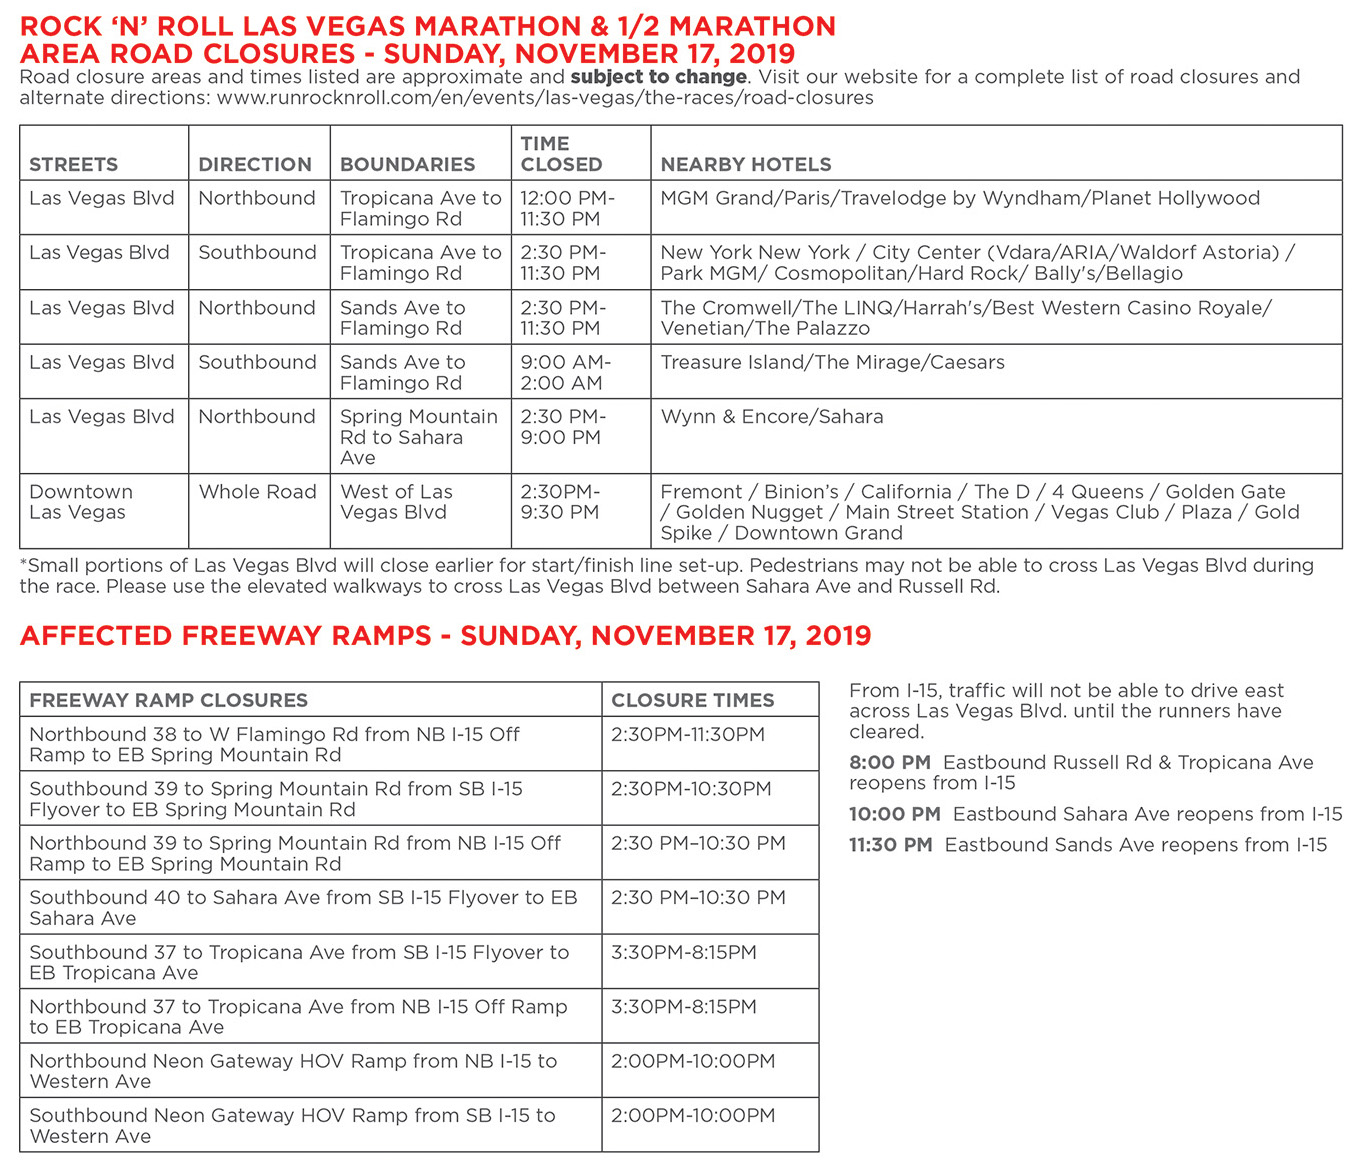 RNR_19_LV_Road_Closures2